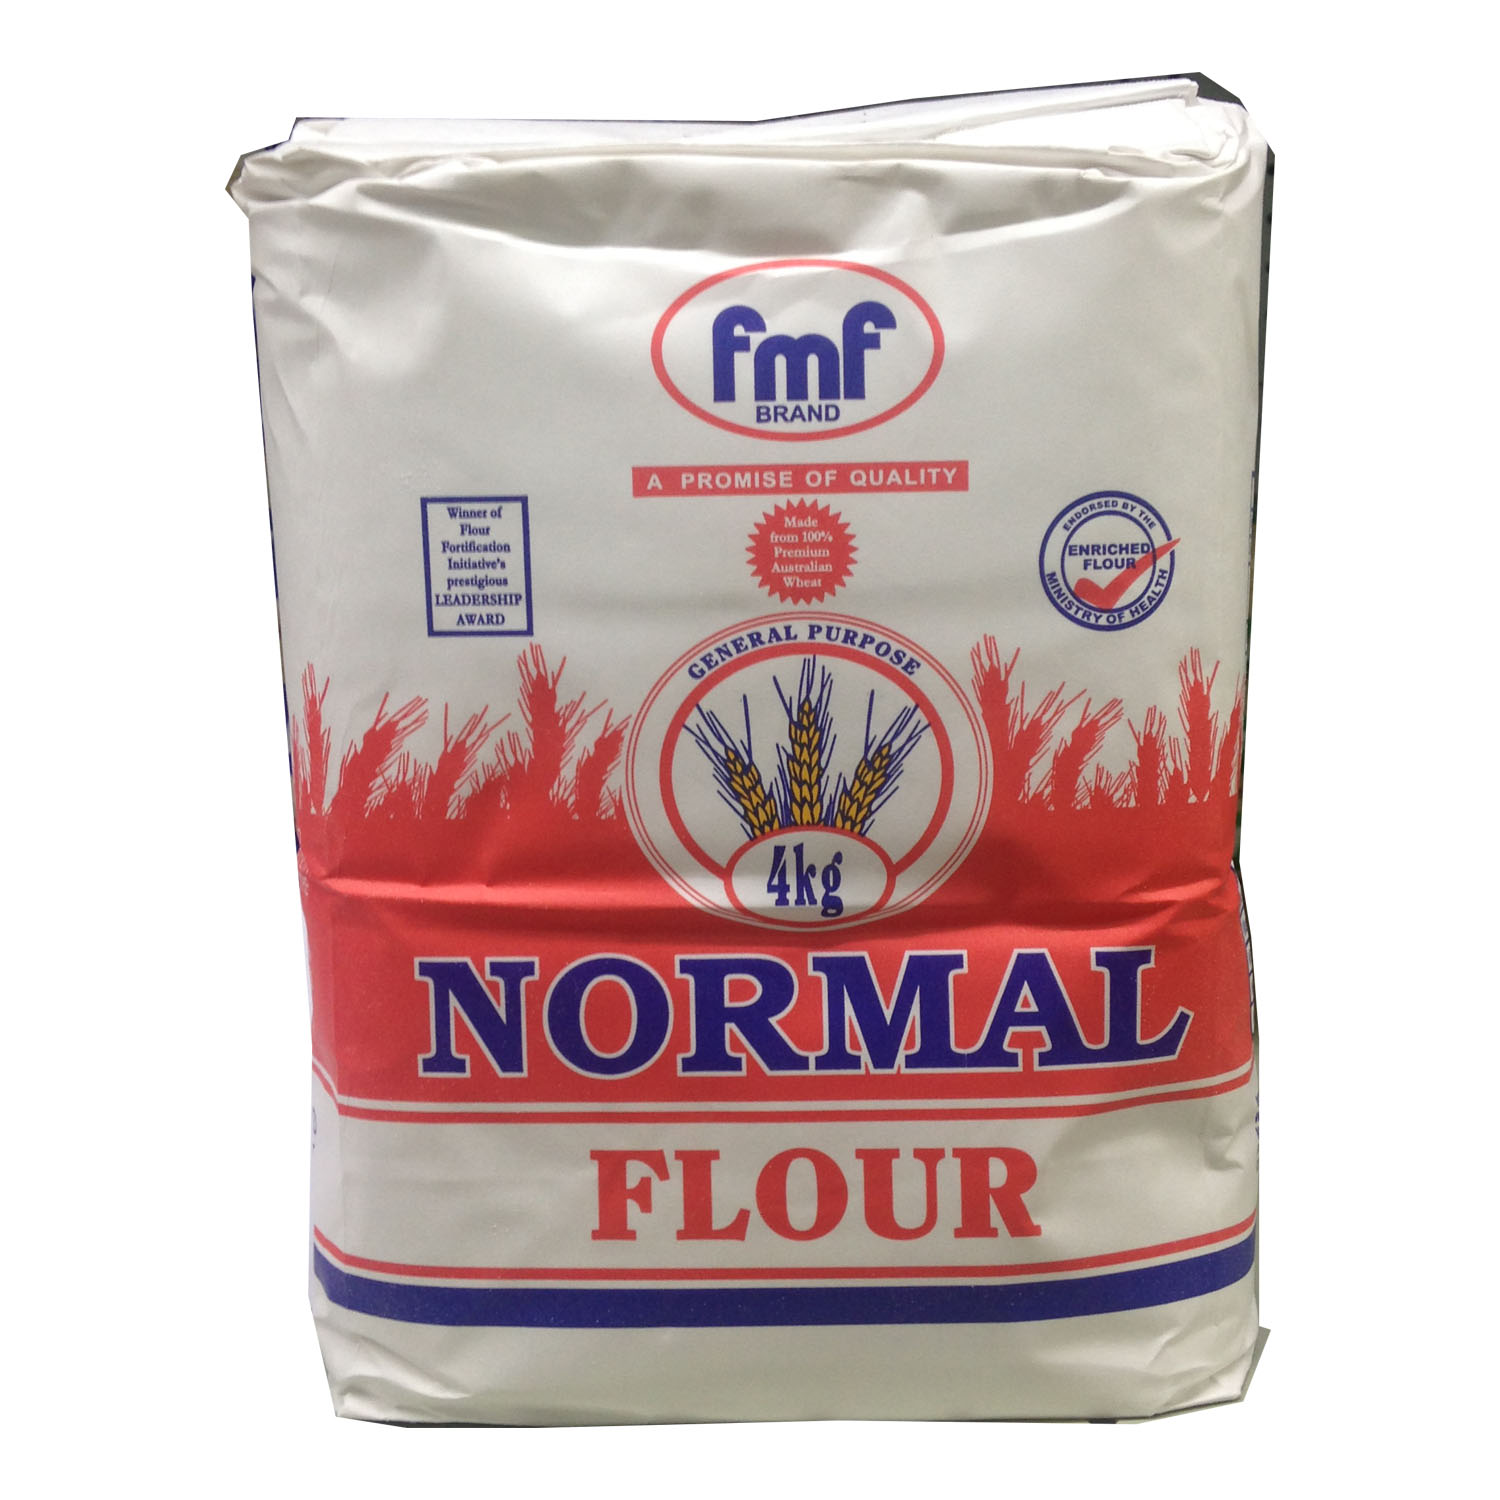 FMF Normal Flour